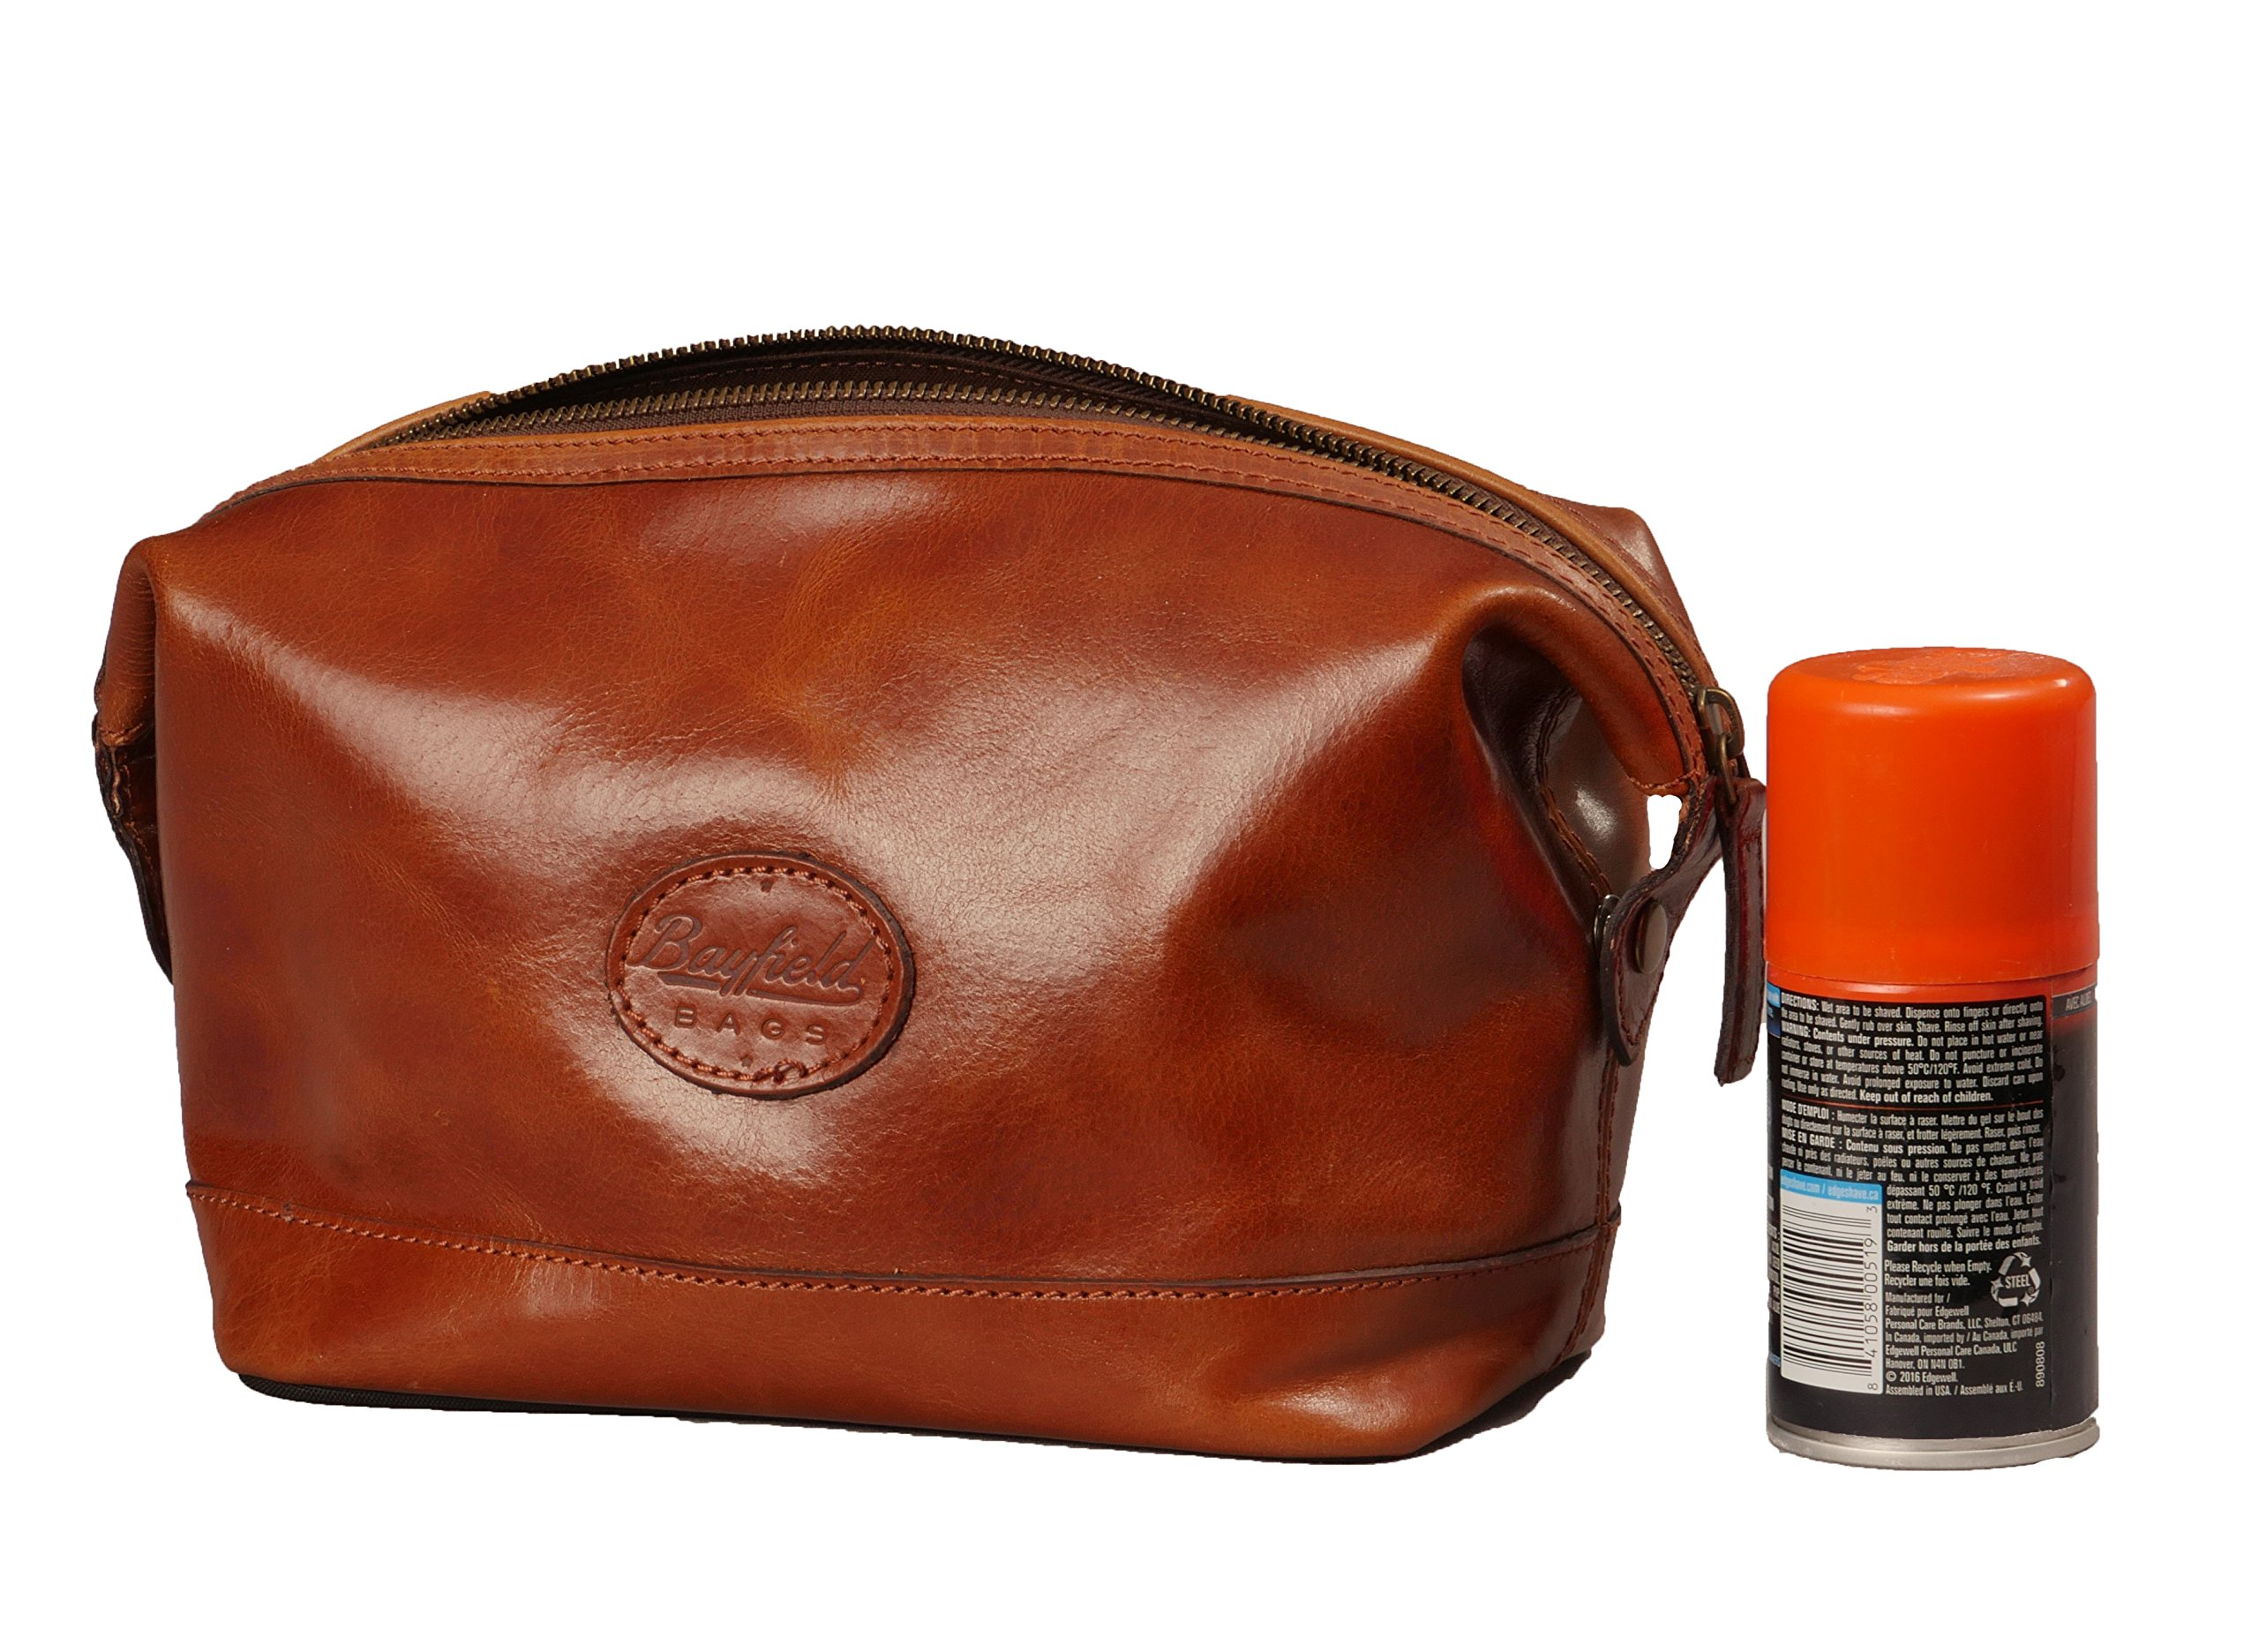 Leather Toiletry Bag for Men – Zippered Dopp Kit Organizer – Brown Travel Shaving Kit Case (9x5x7) by Bayfield Bags by Bayfield Bags (Image #7)